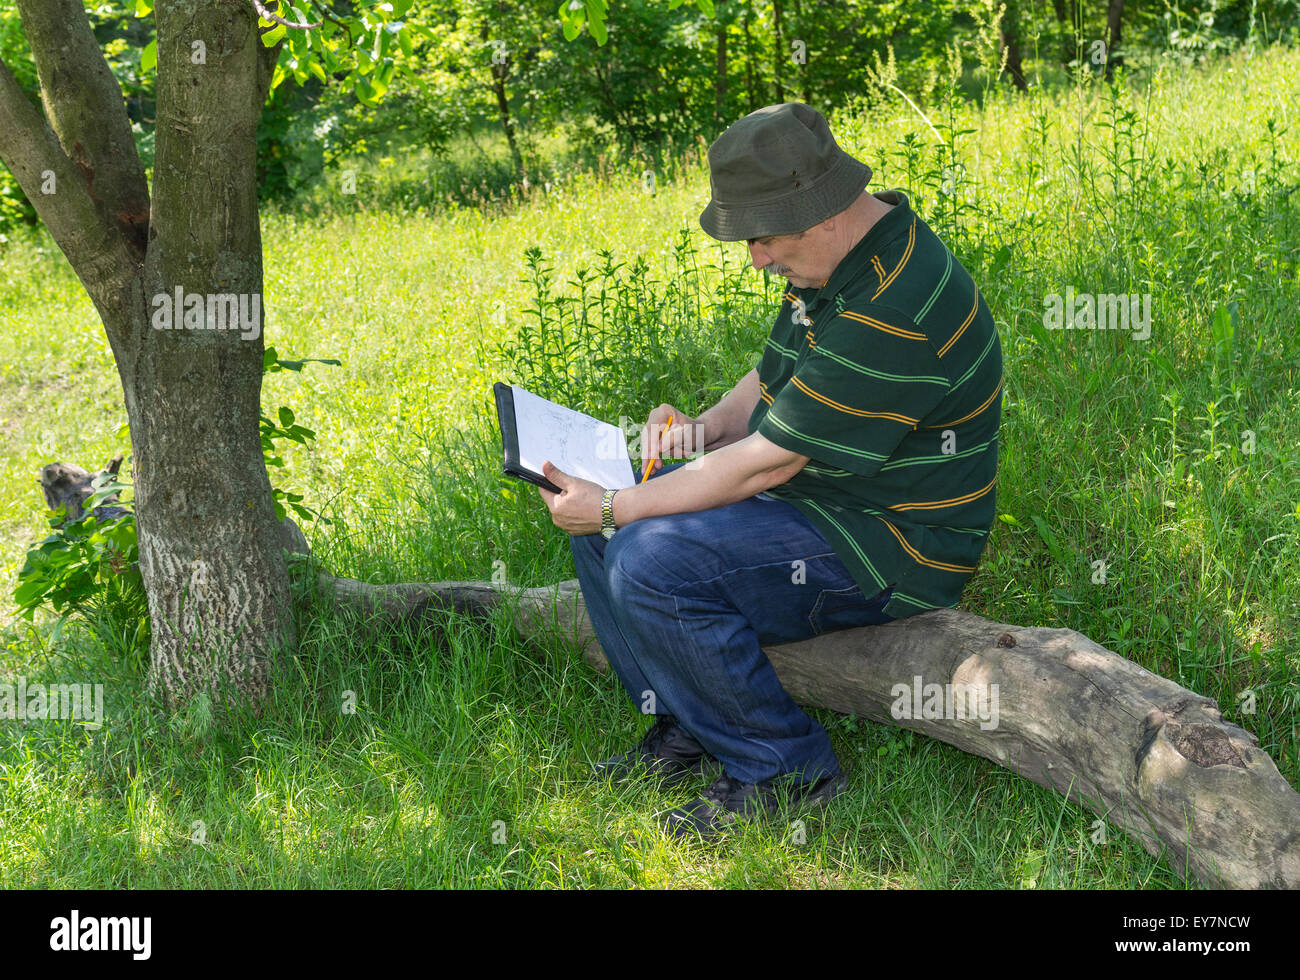 mature painter doing sketch outdoor stock photo, royalty free image